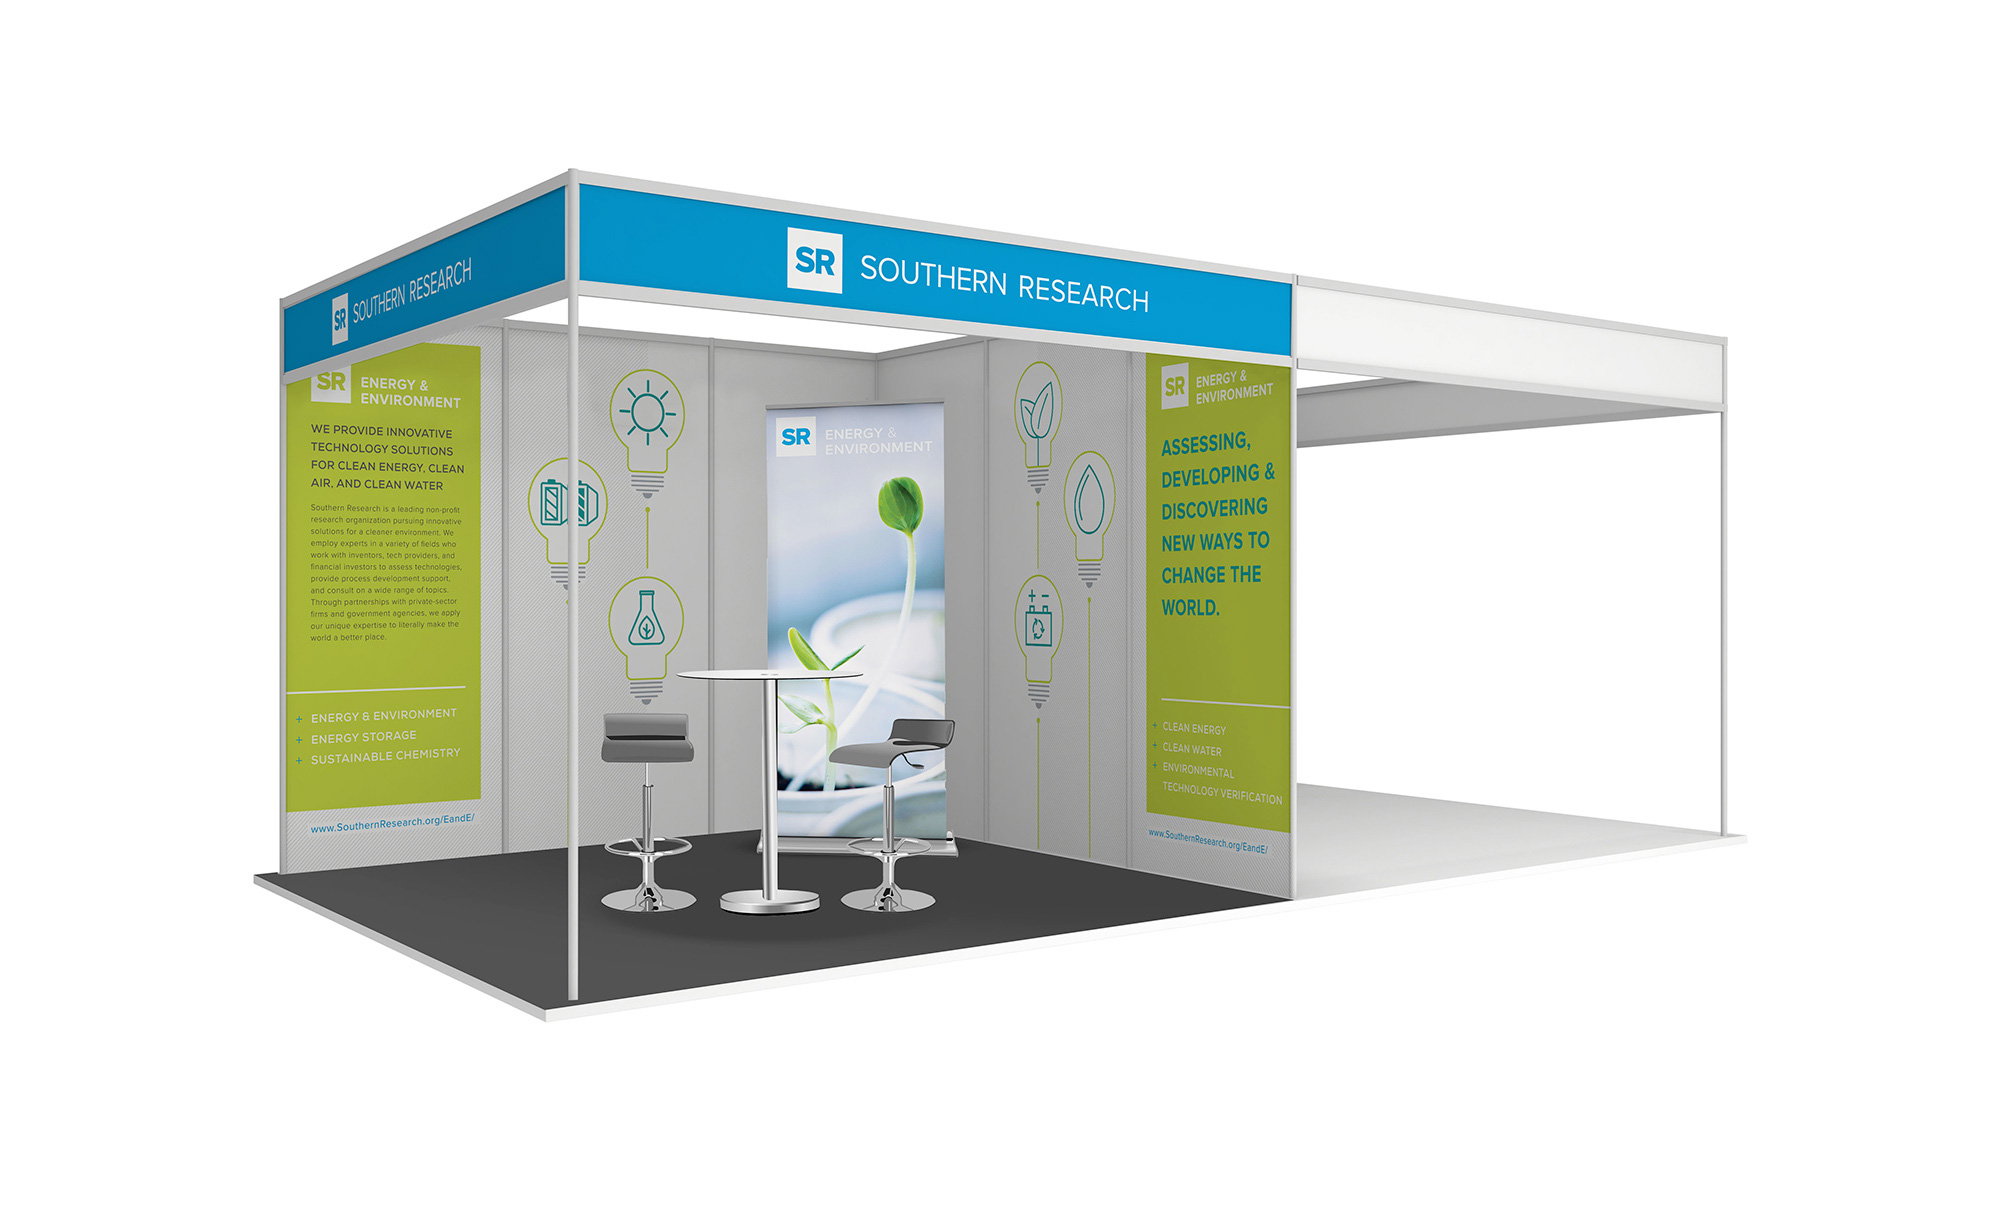 Southern Research Case Study Trade Show Booth